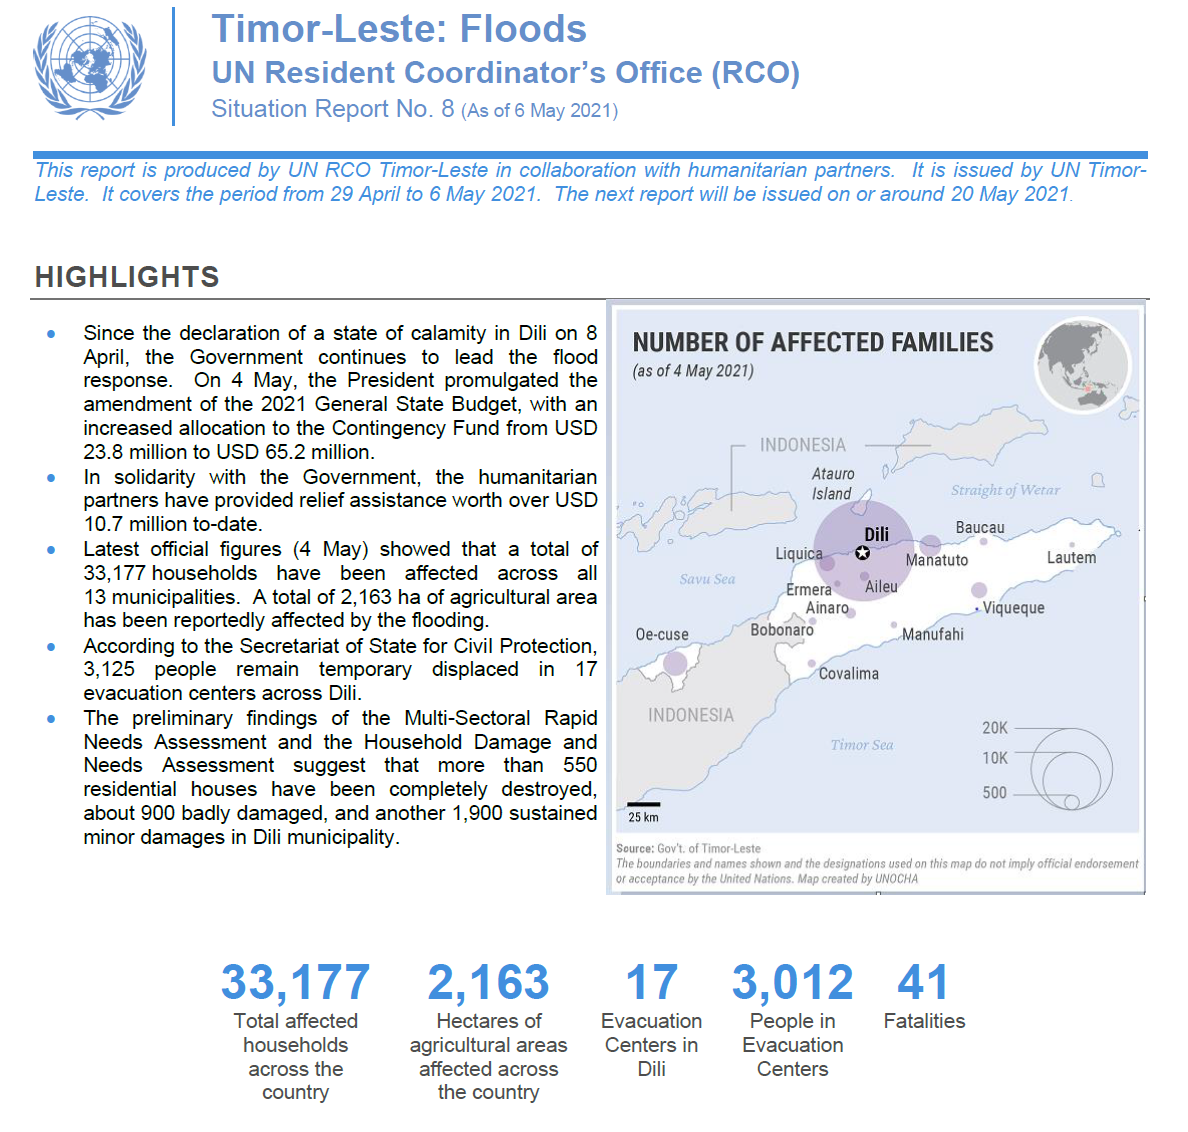 Timor Leste Floods: UN Situation Report No. 8 (As of 06 May 2021)